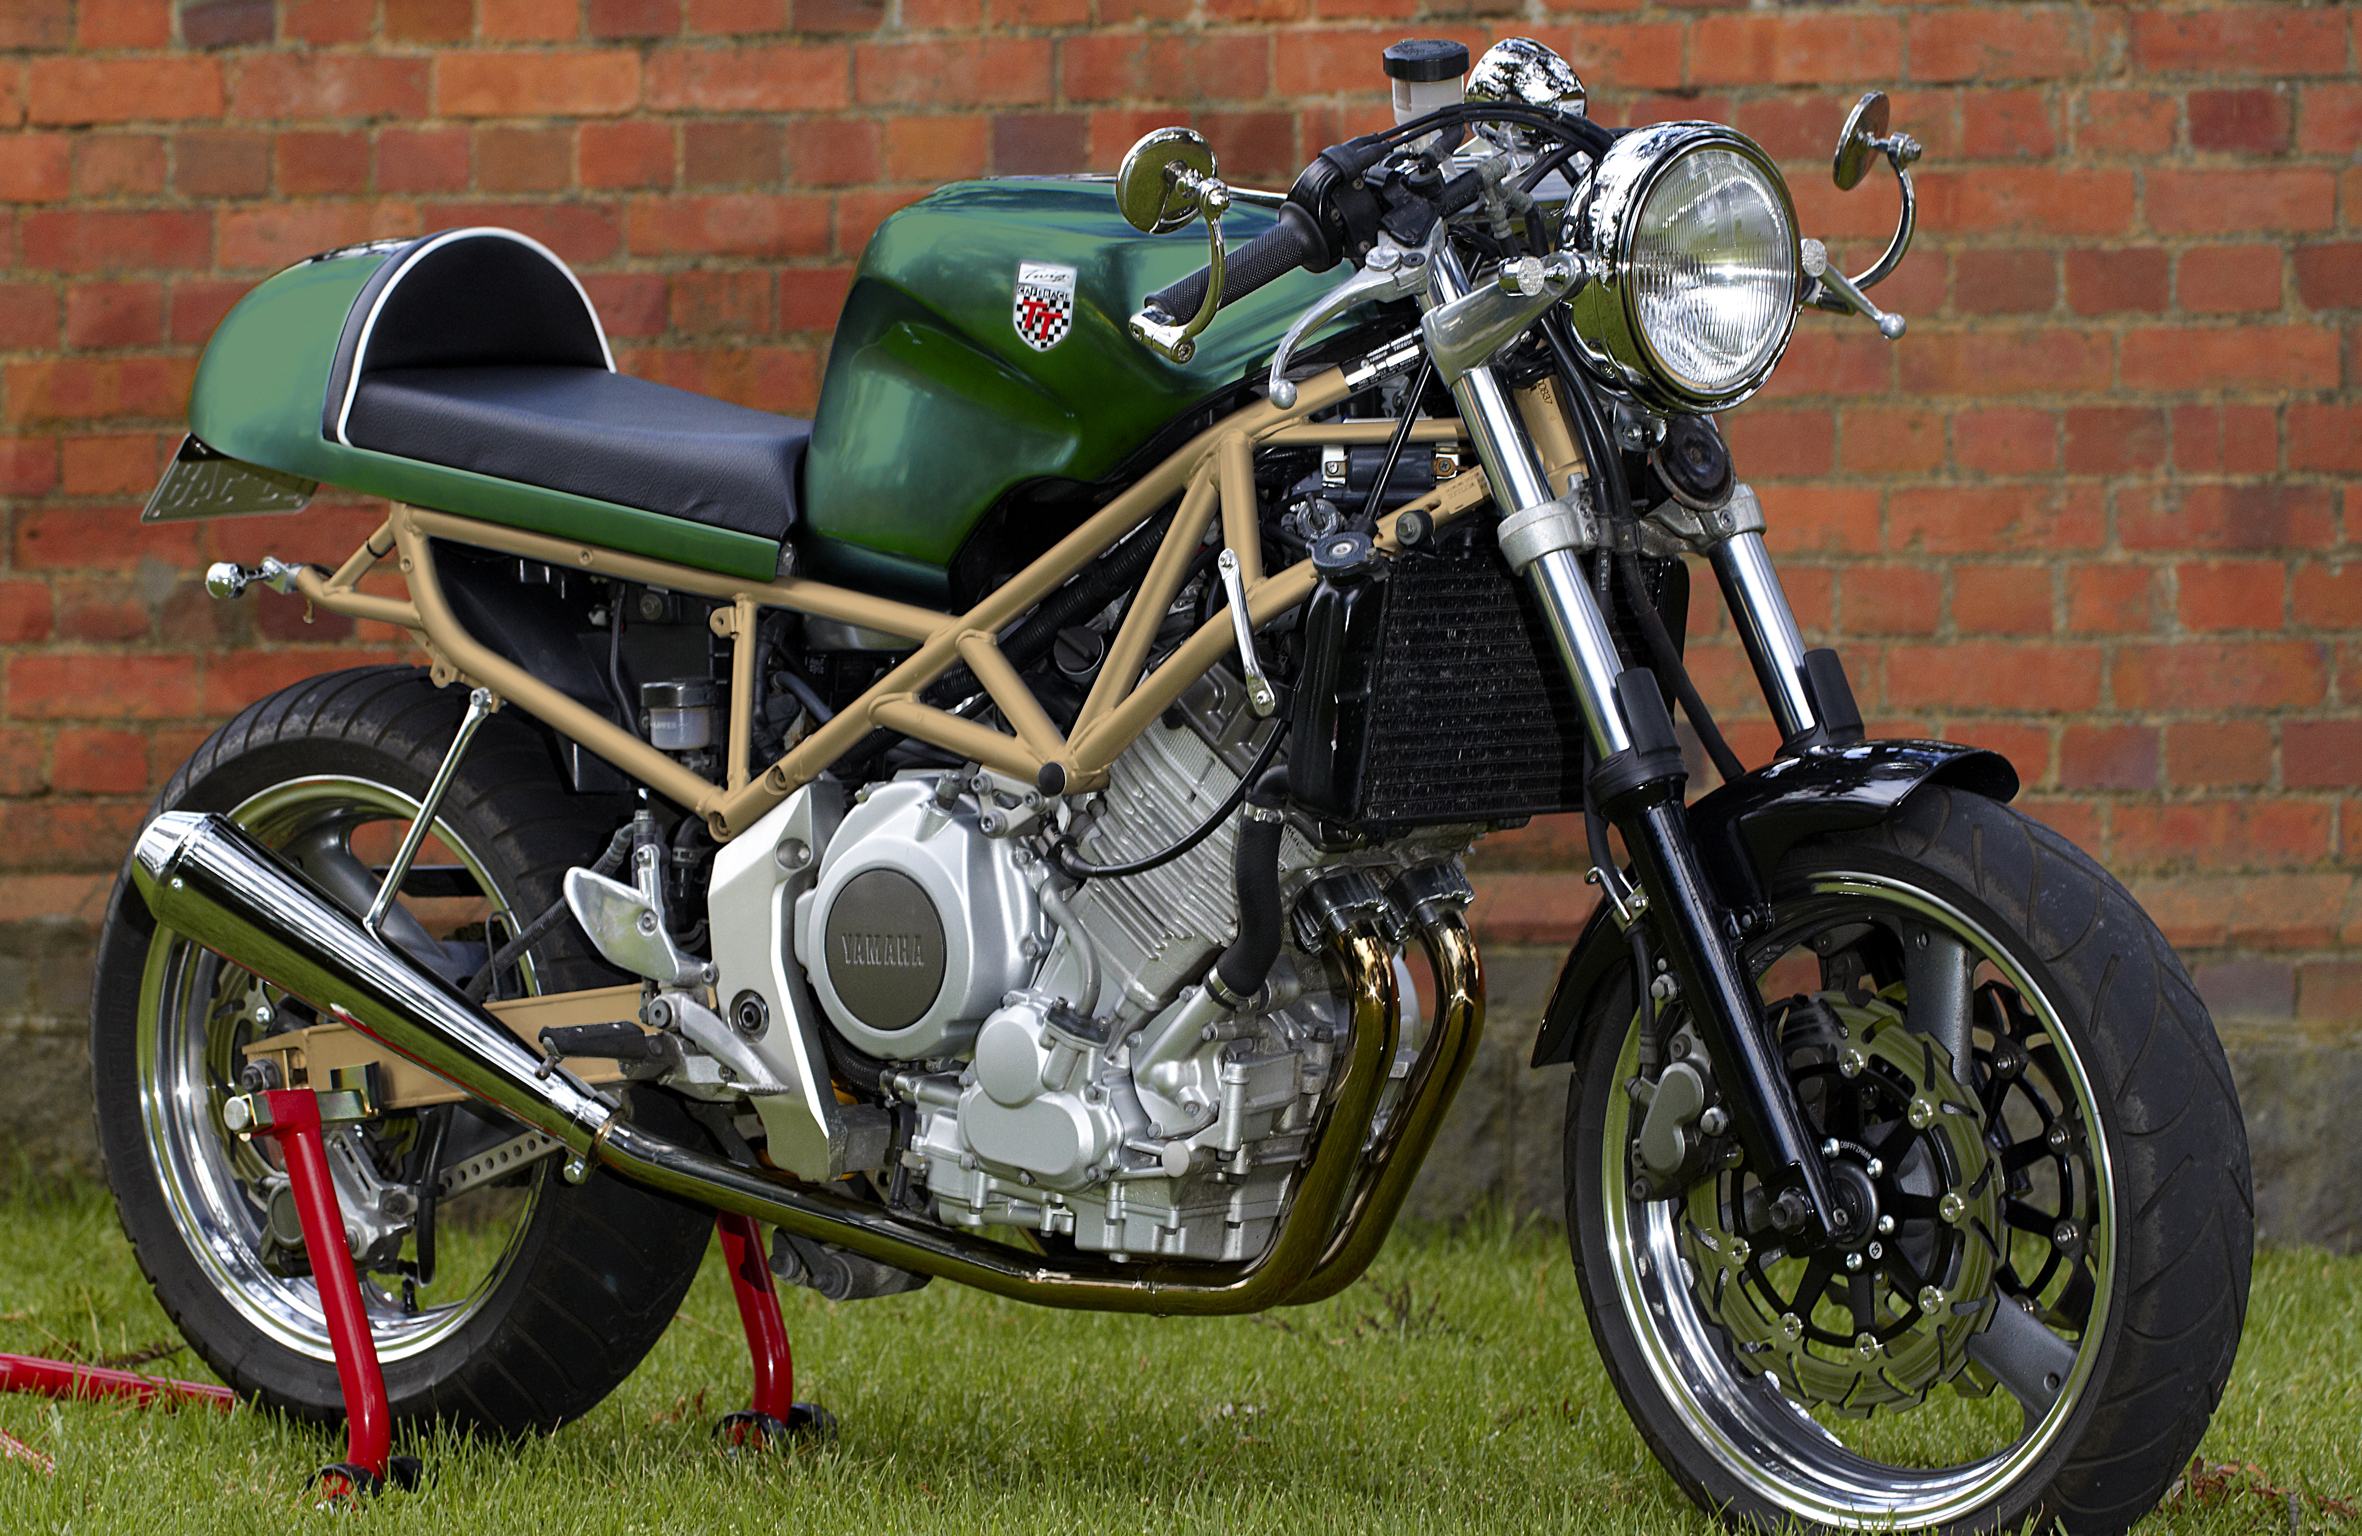 Xs 650 Street Tracker also Honda Xl 500 Vollblut Enduro furthermore Blacksquaremotorcycle furthermore Bmw K 1600 Gt 2017 additionally Green And Gold. on yamaha 750 gold